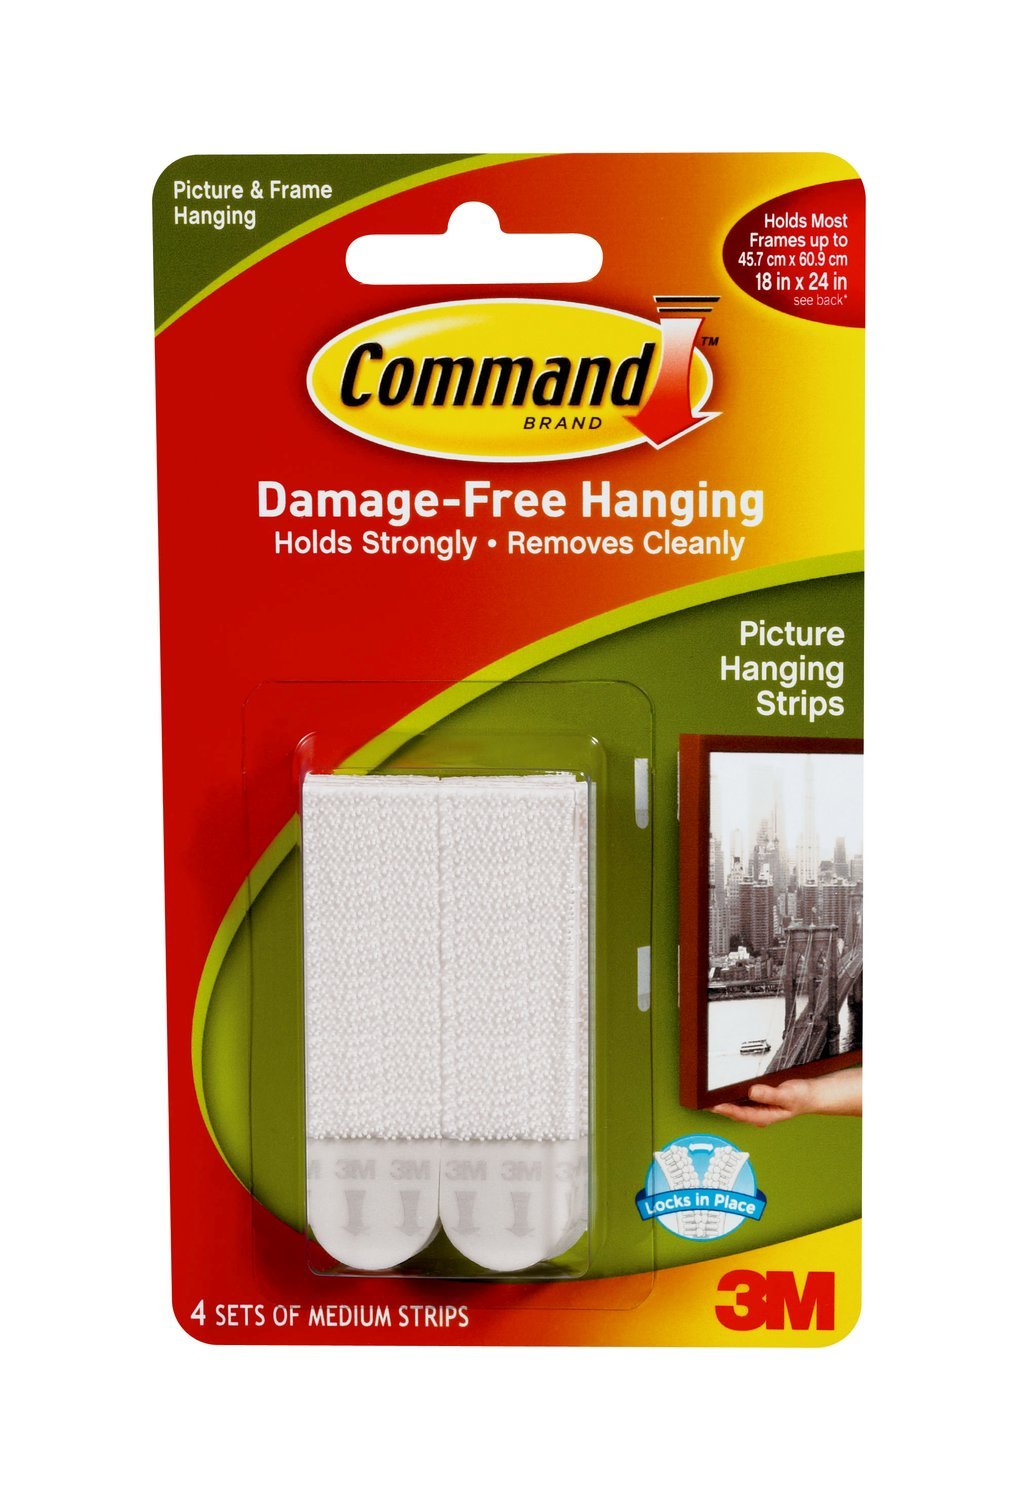 Wall Hanging Without Nails Part - 38: Amazon.com: Command Picture Hanging Strips, Medium, White, 4-Pairs  (17201-4PK-ES): 3M: Home Improvement